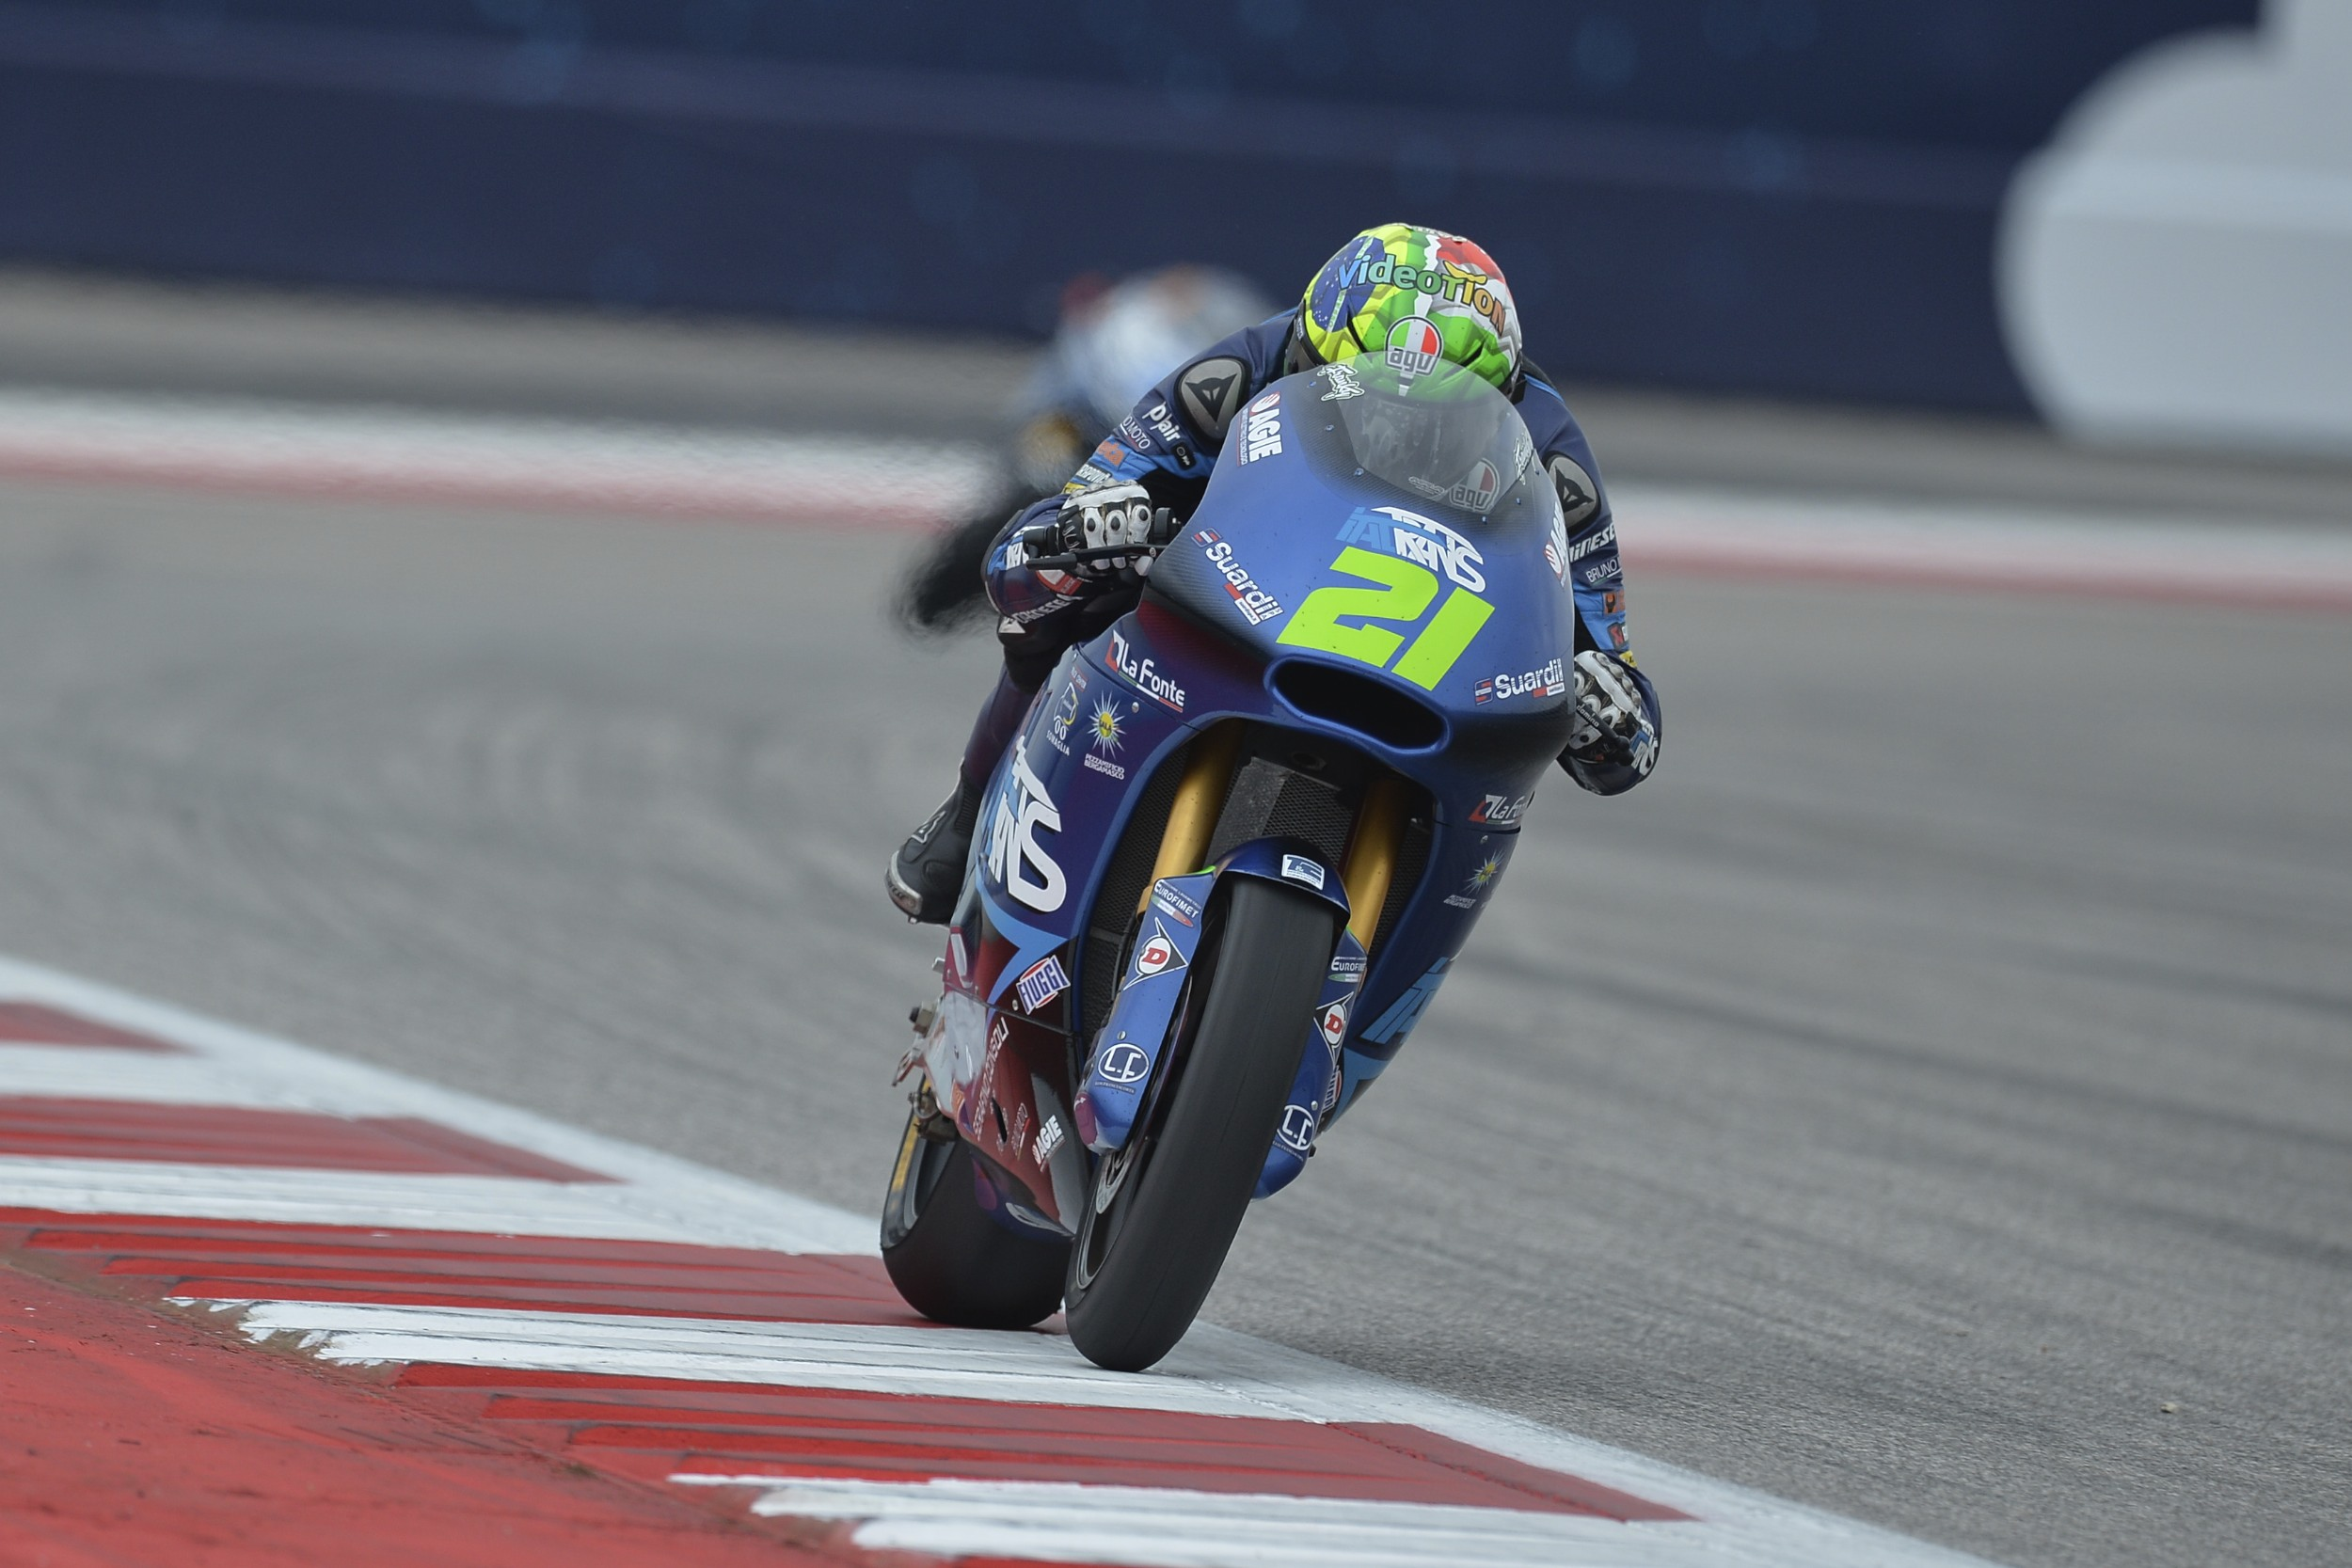 Morbidelli Texas qualifica - qualifying